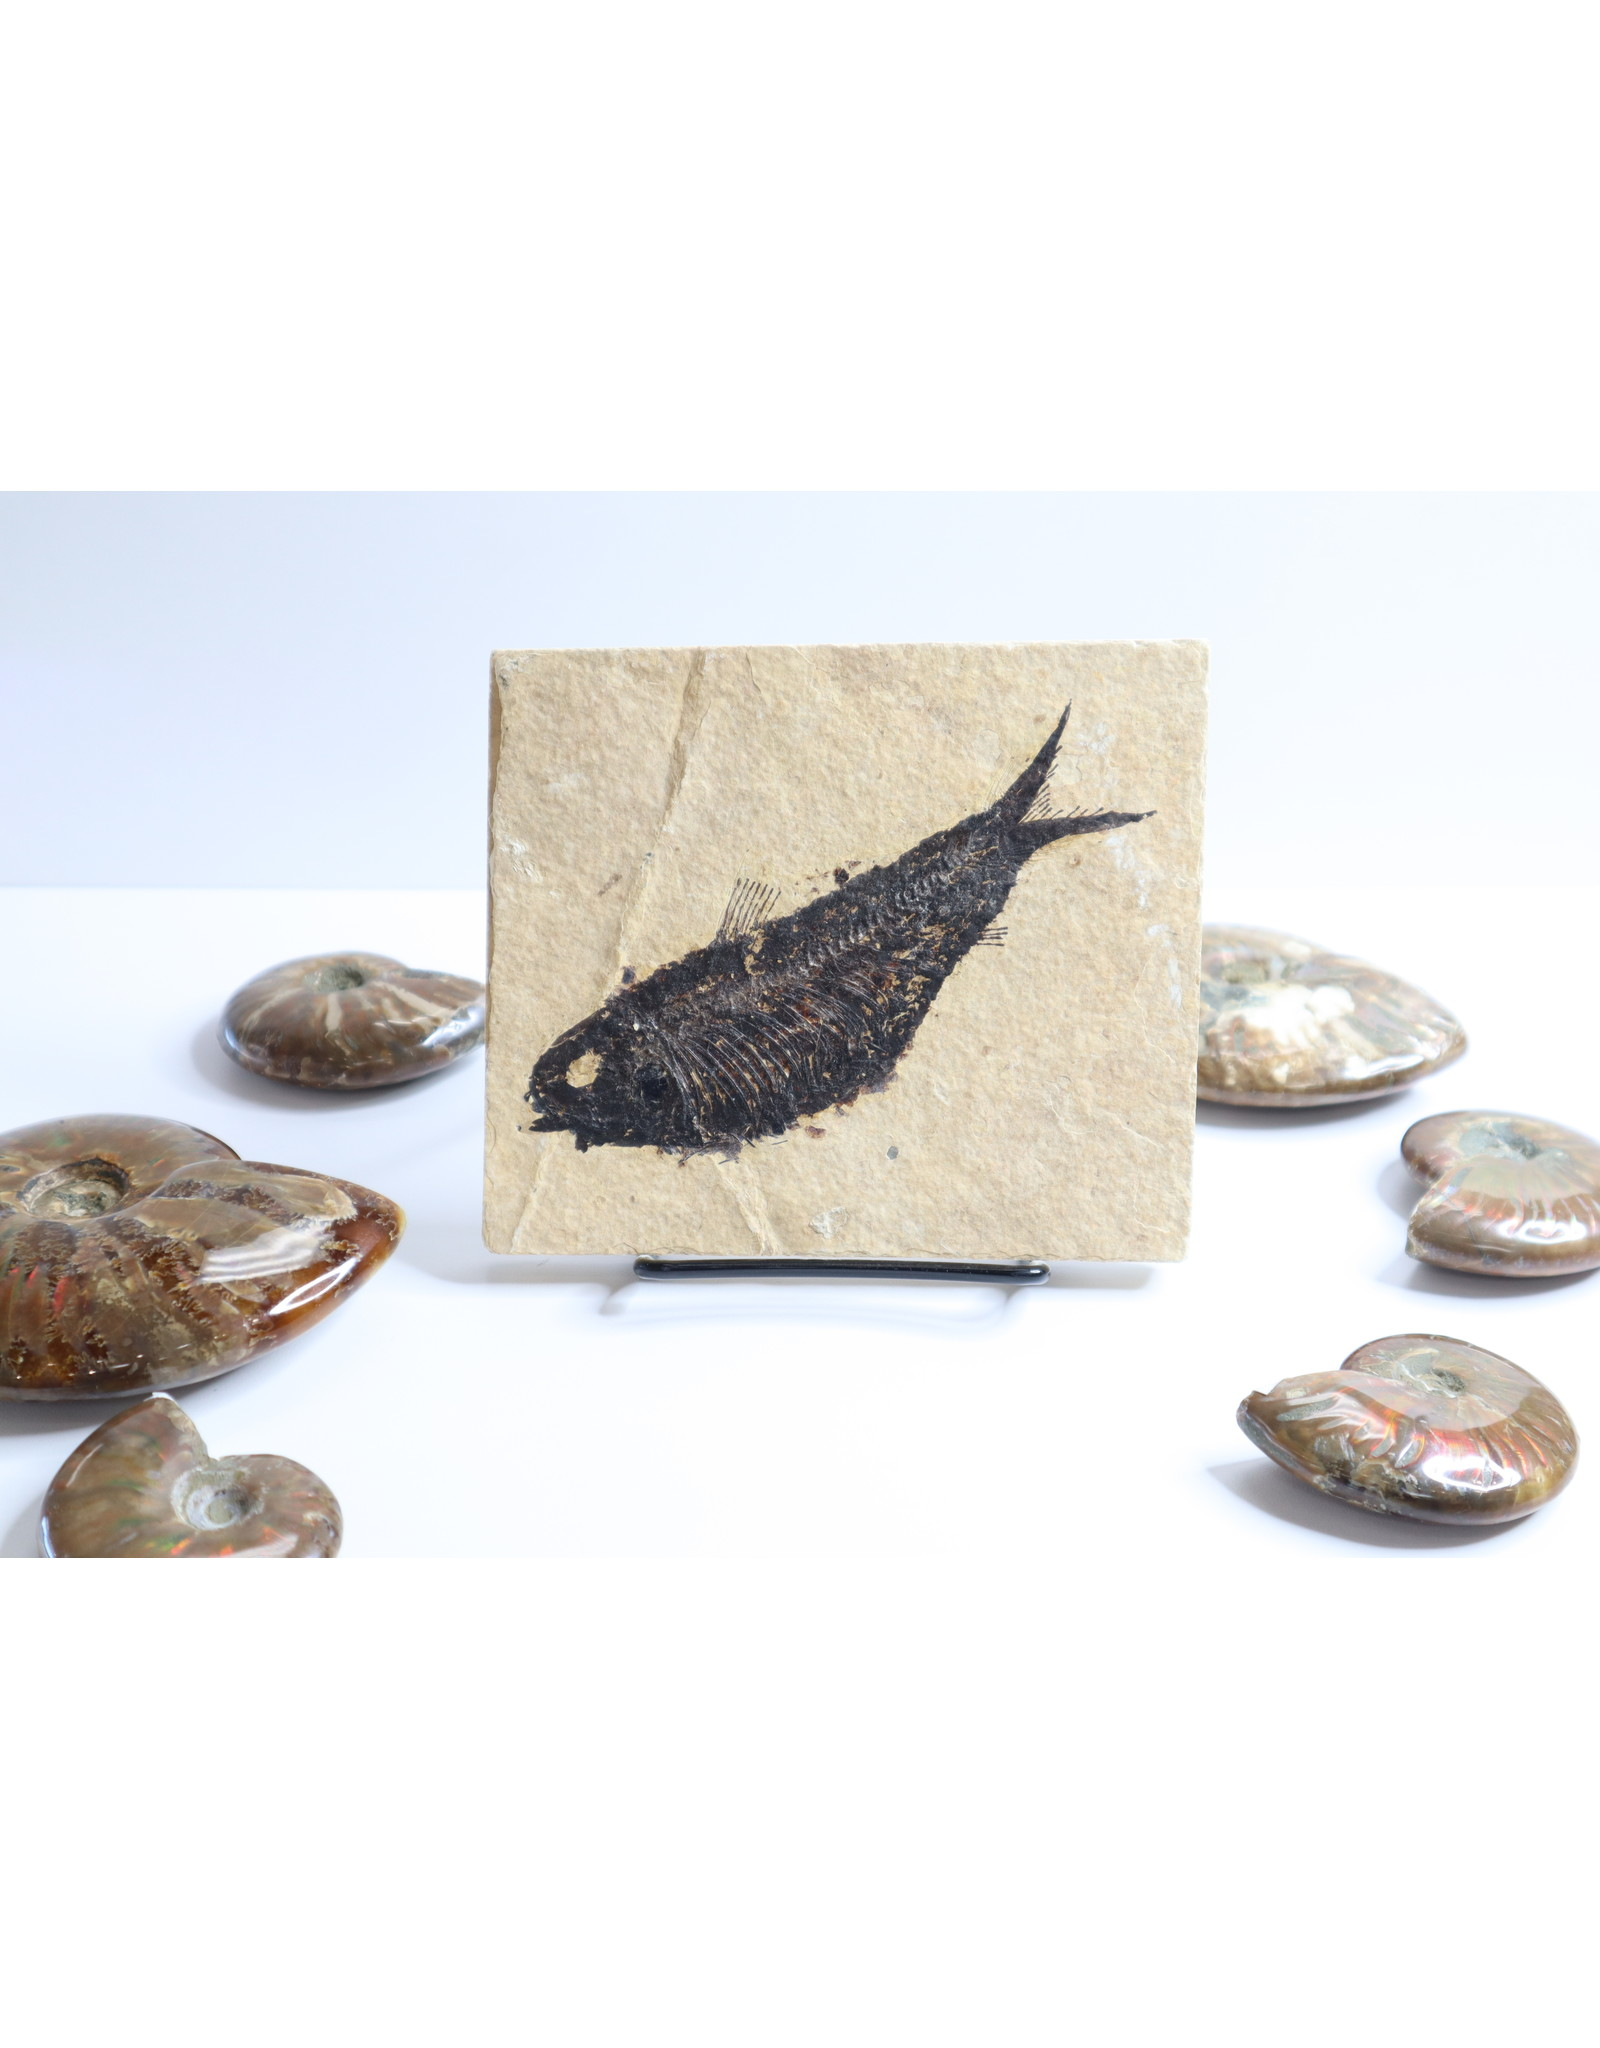 Fossilized Fish #1